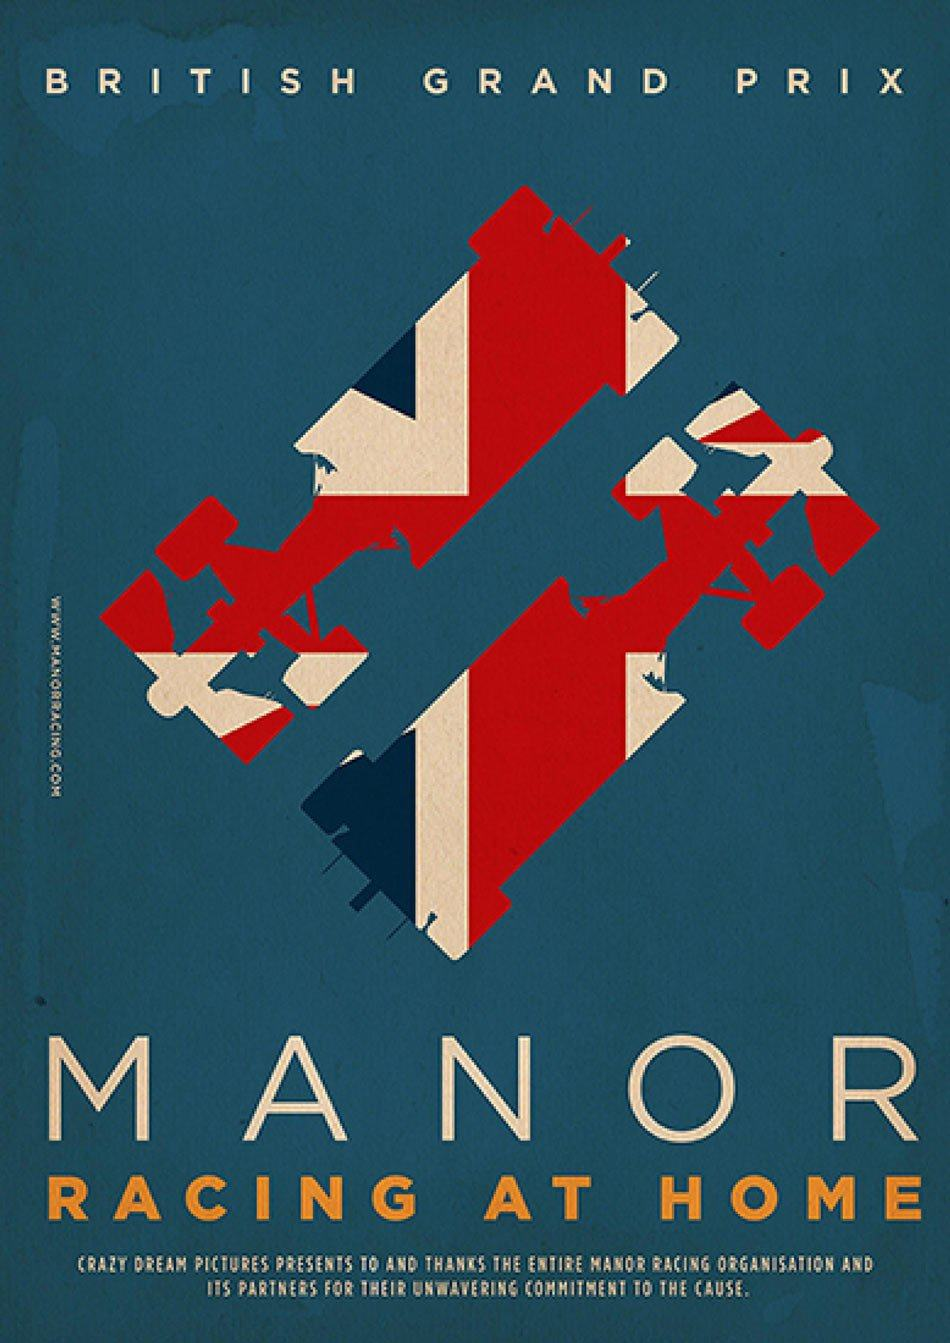 manor-racing-formula-f1-2016-british-gran-prix-posters